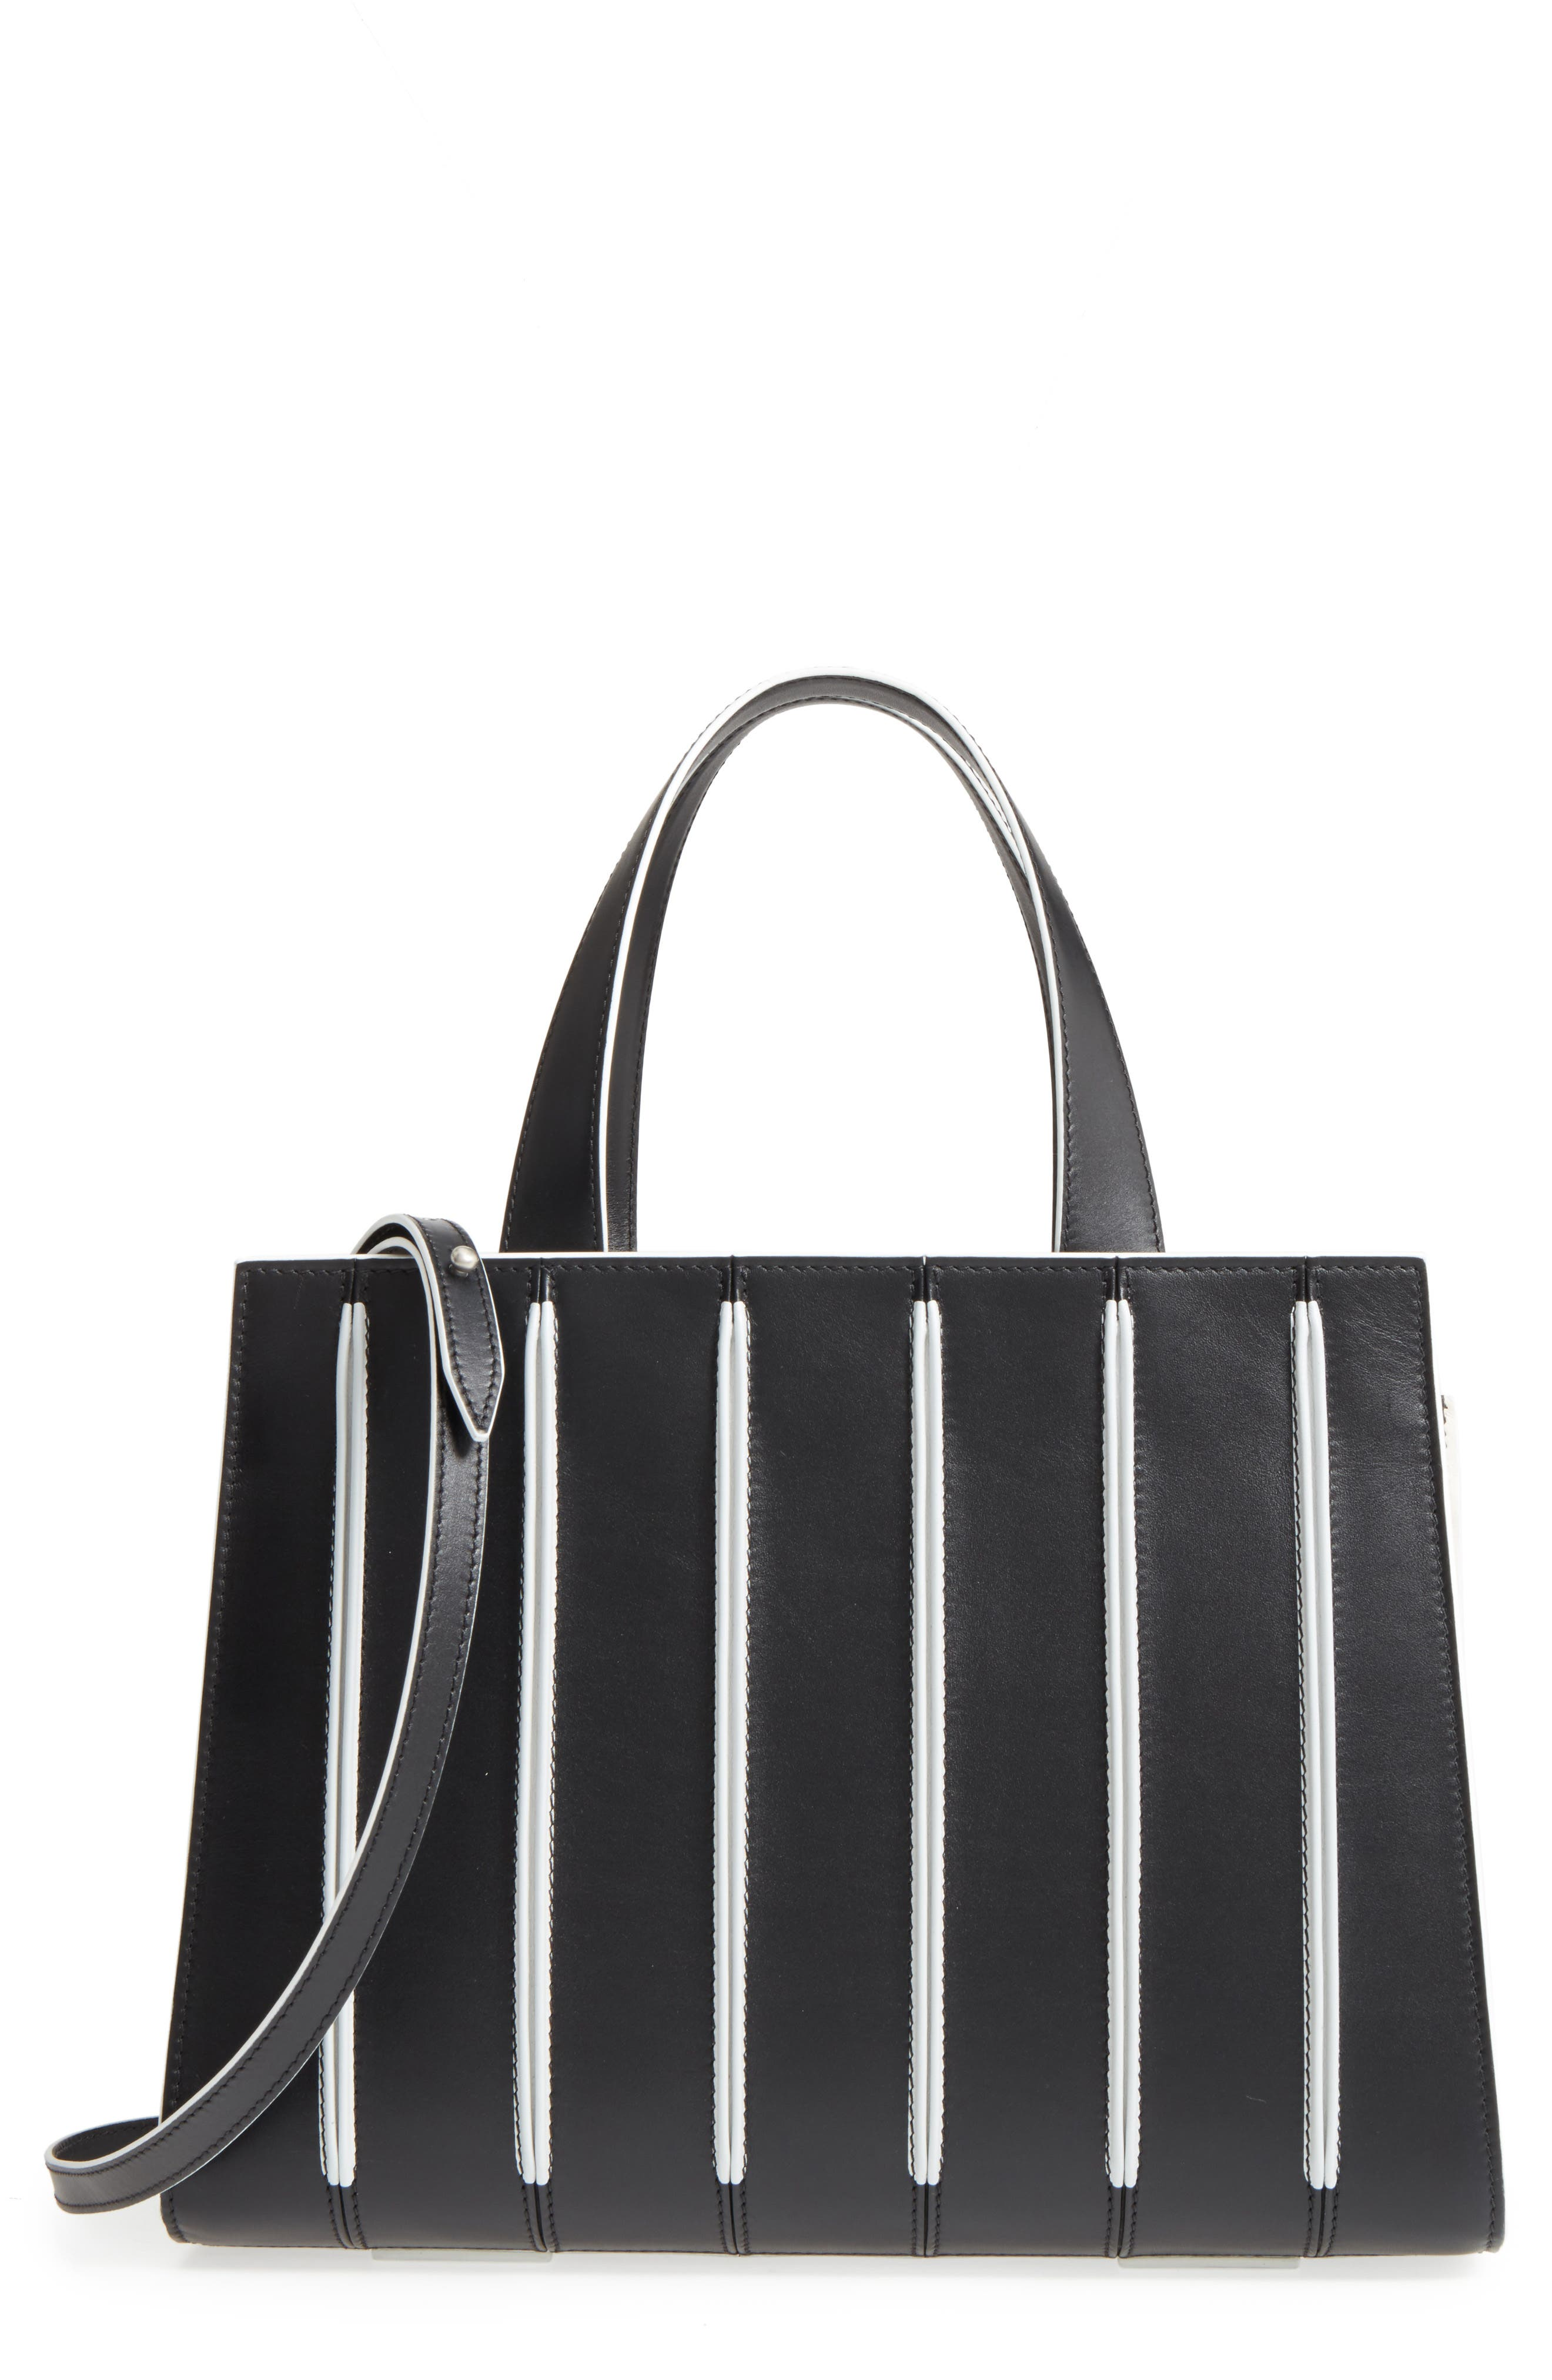 Medium Whitney Leather Tote,                             Main thumbnail 1, color,                             001